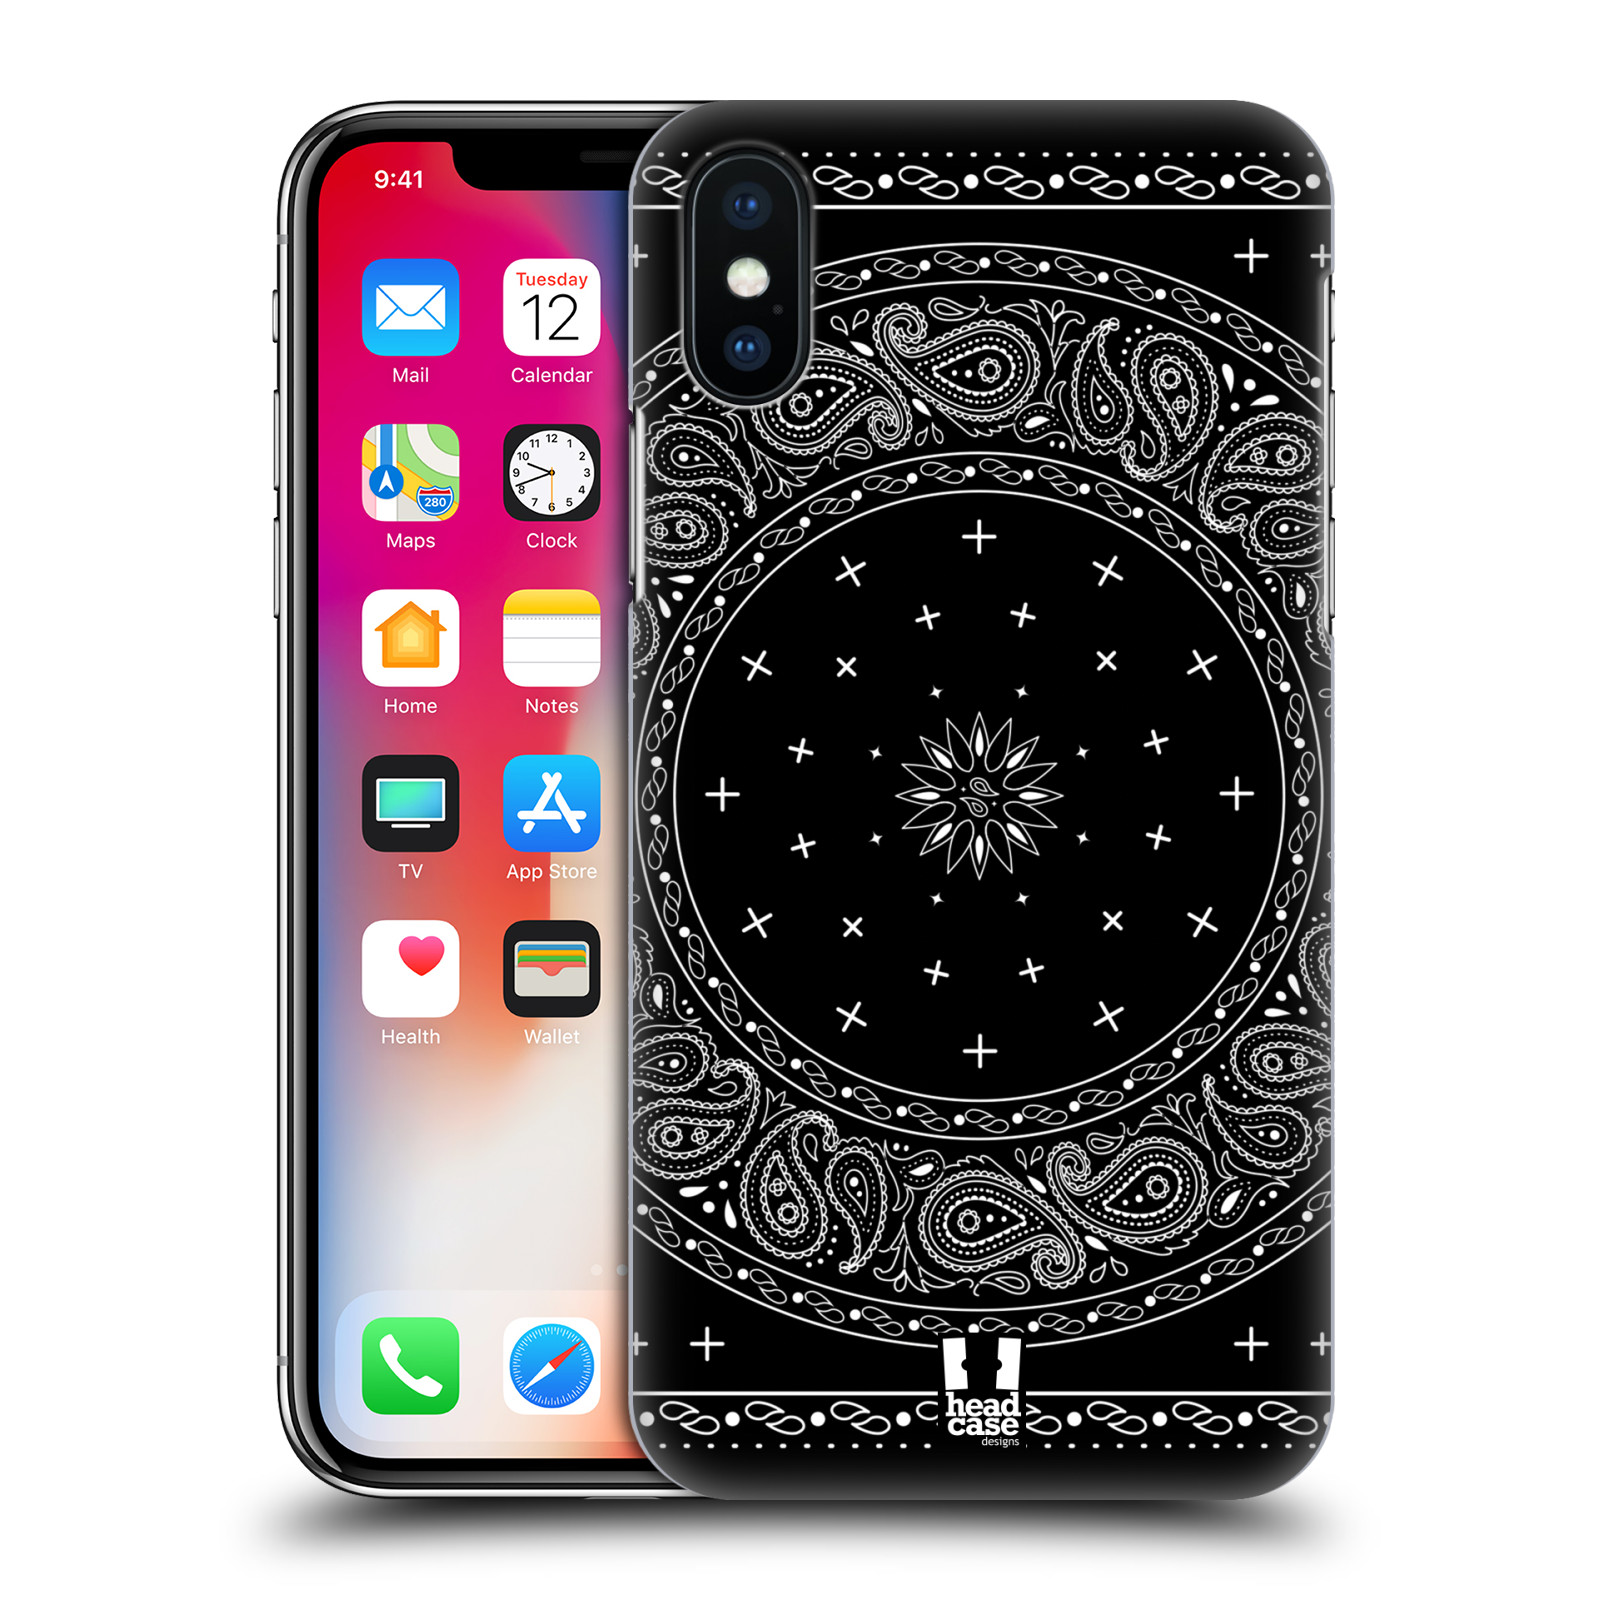 HEAD-CASE-DESIGNS-CLASSIC-PAISLEY-BANDANA-HARD-BACK-CASE-FOR-APPLE-iPHONE-PHONES